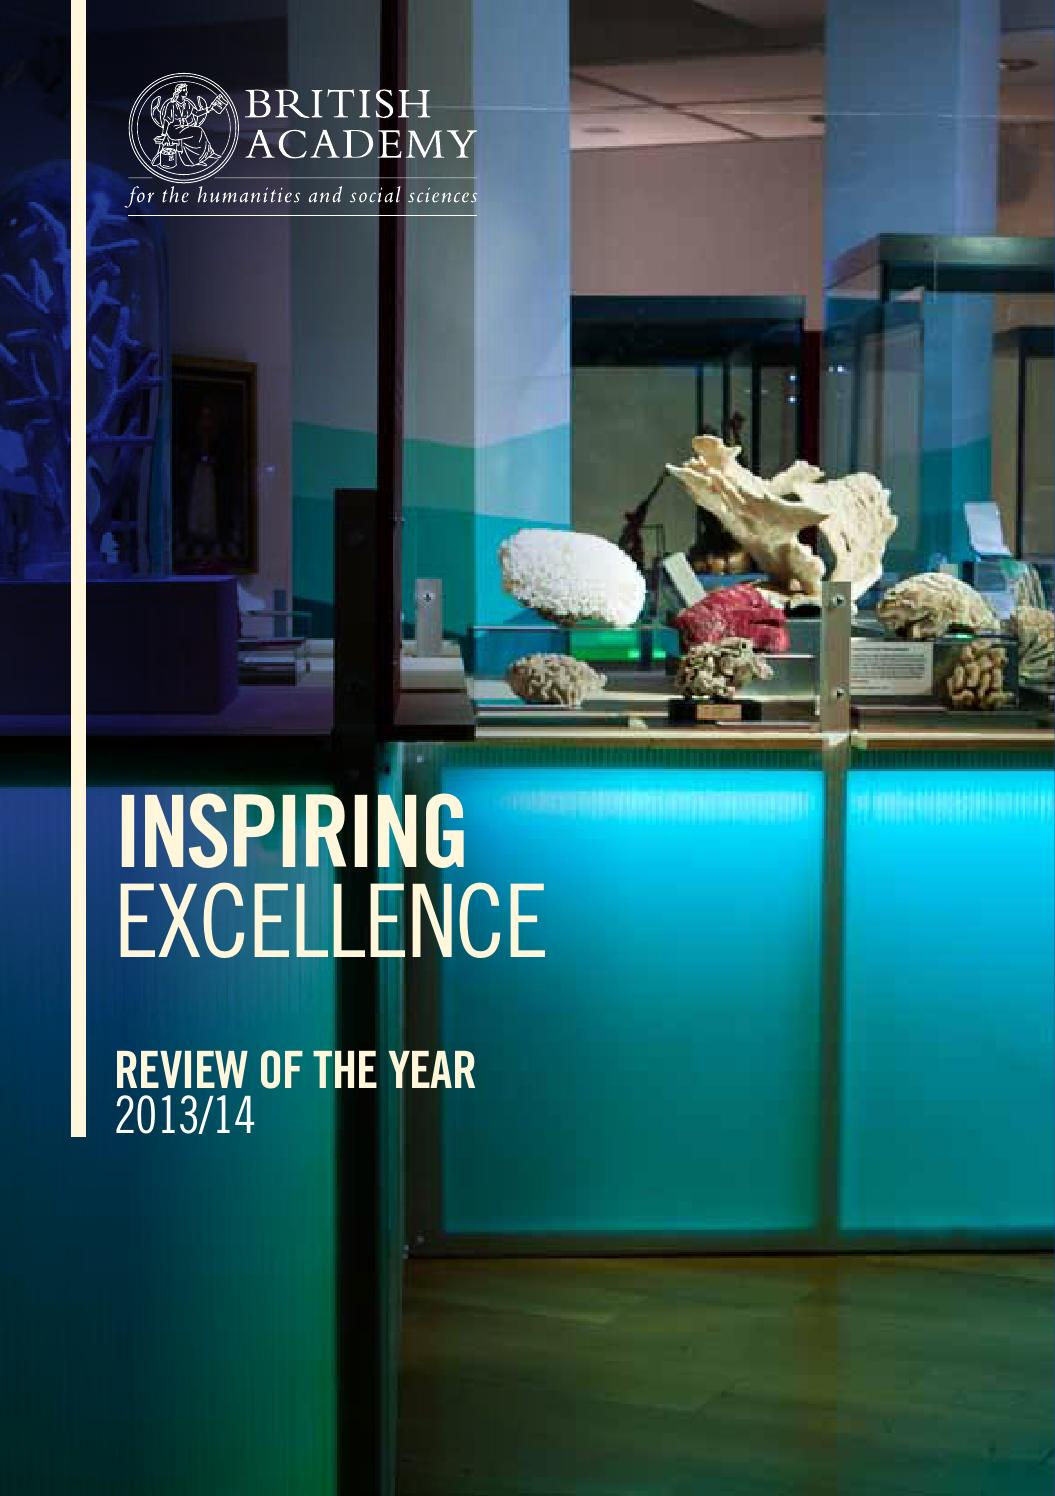 British Academy Review Of The Year 2013 14 By British Academy Issuu